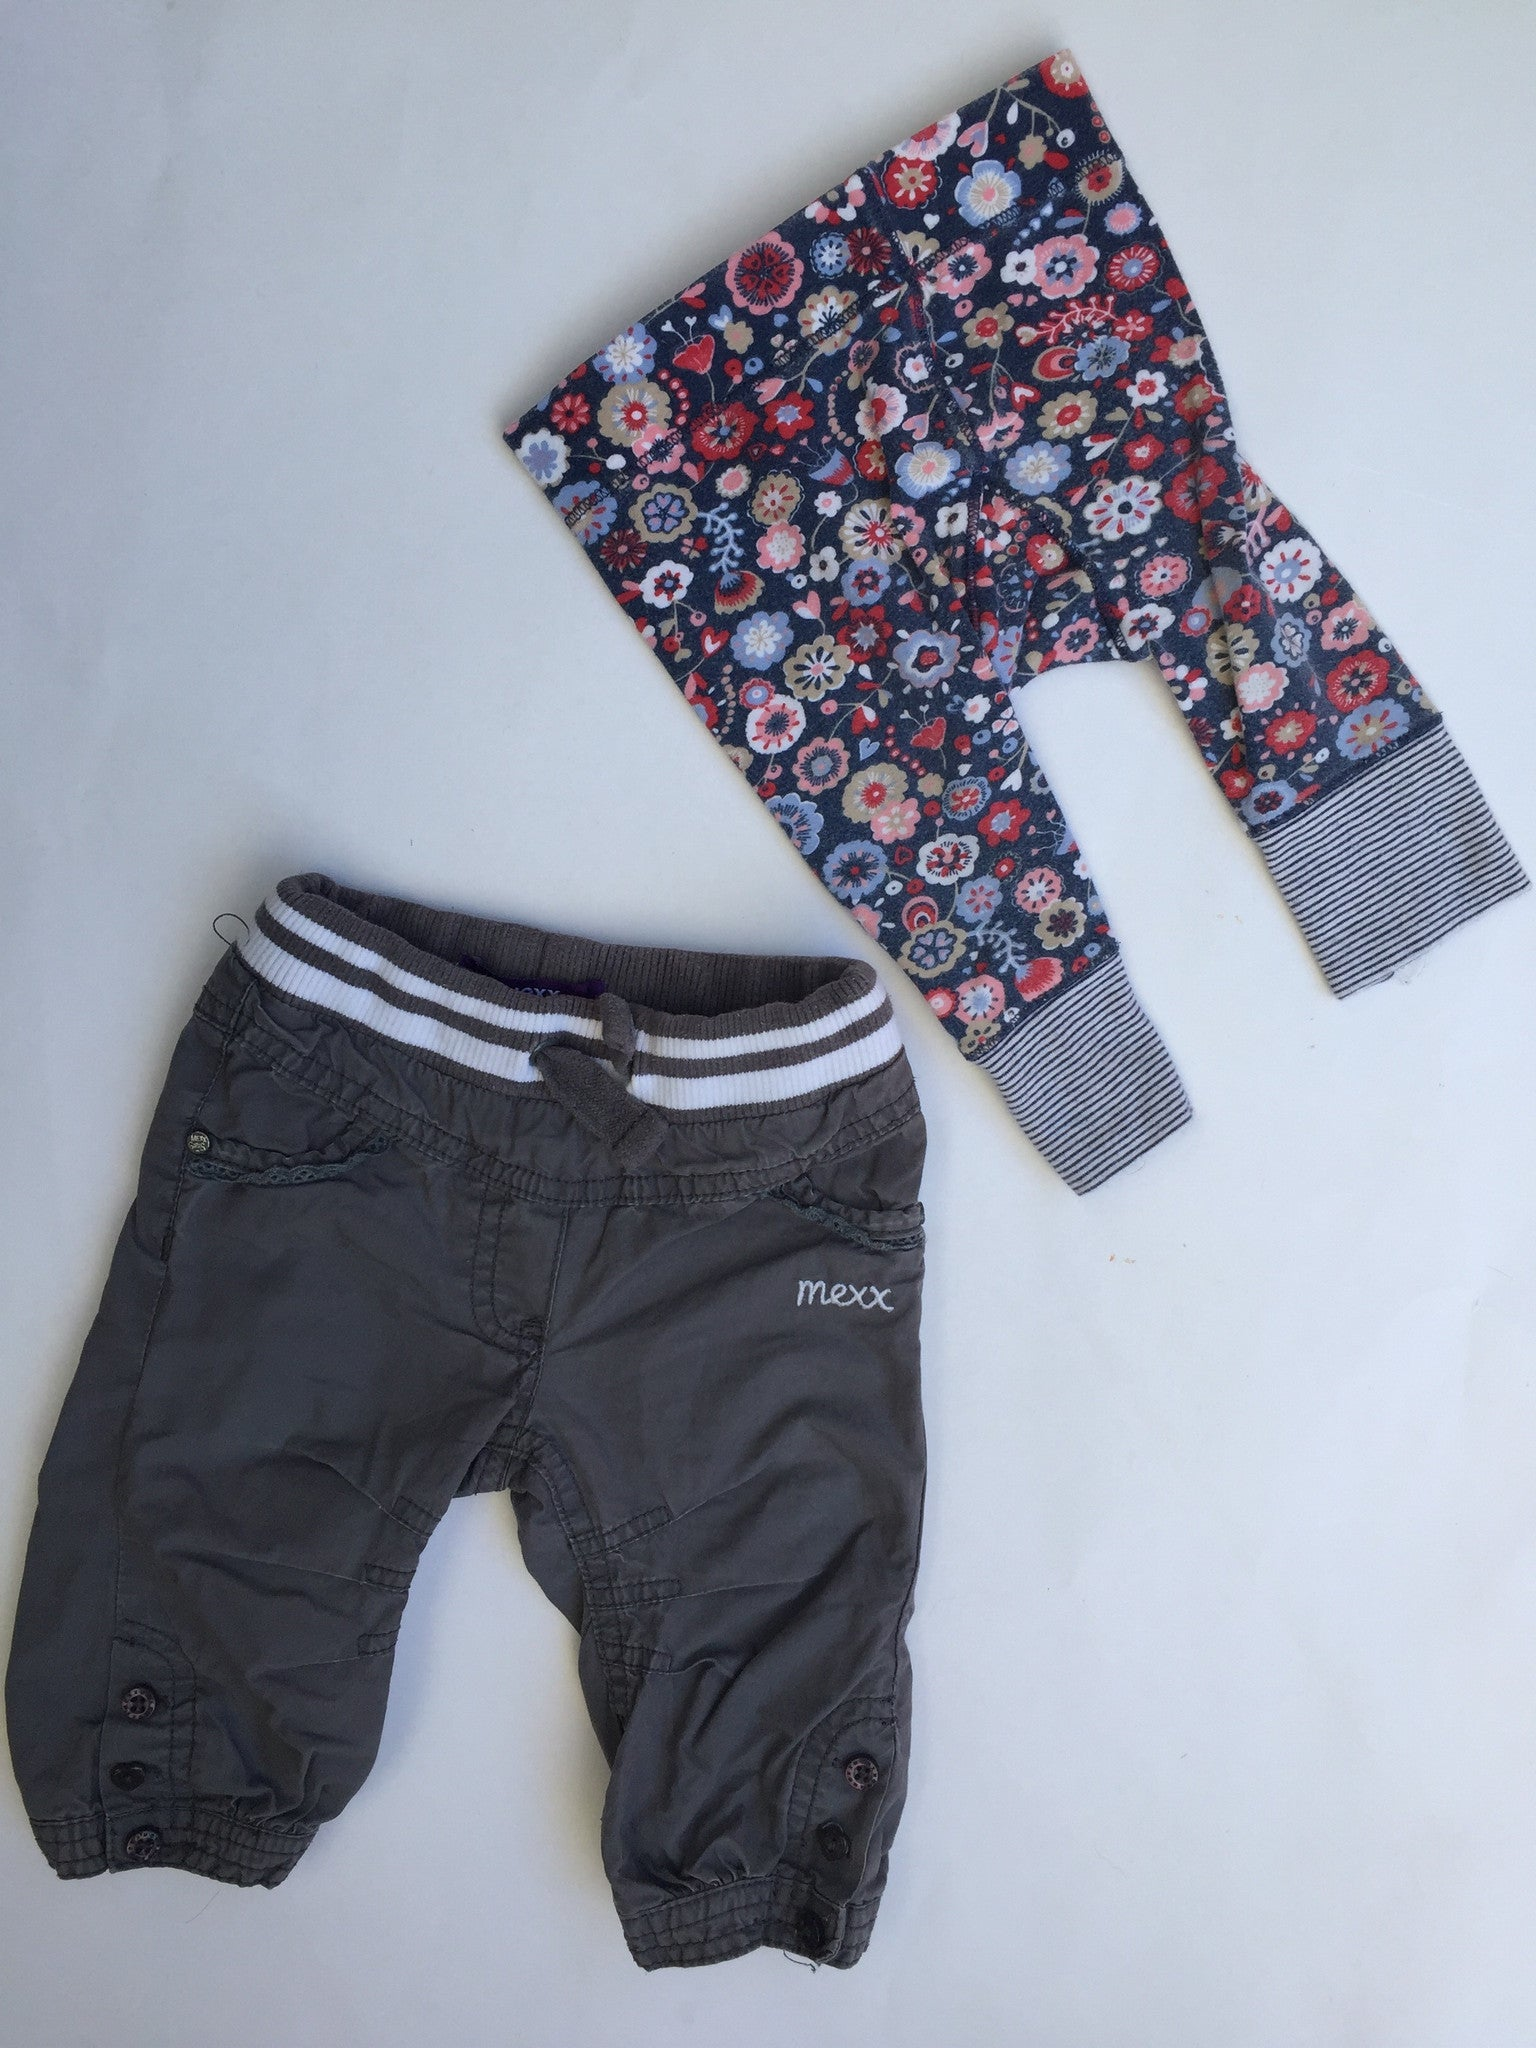 Mexx Pants & Floral Leggings | Girls | 3-6M